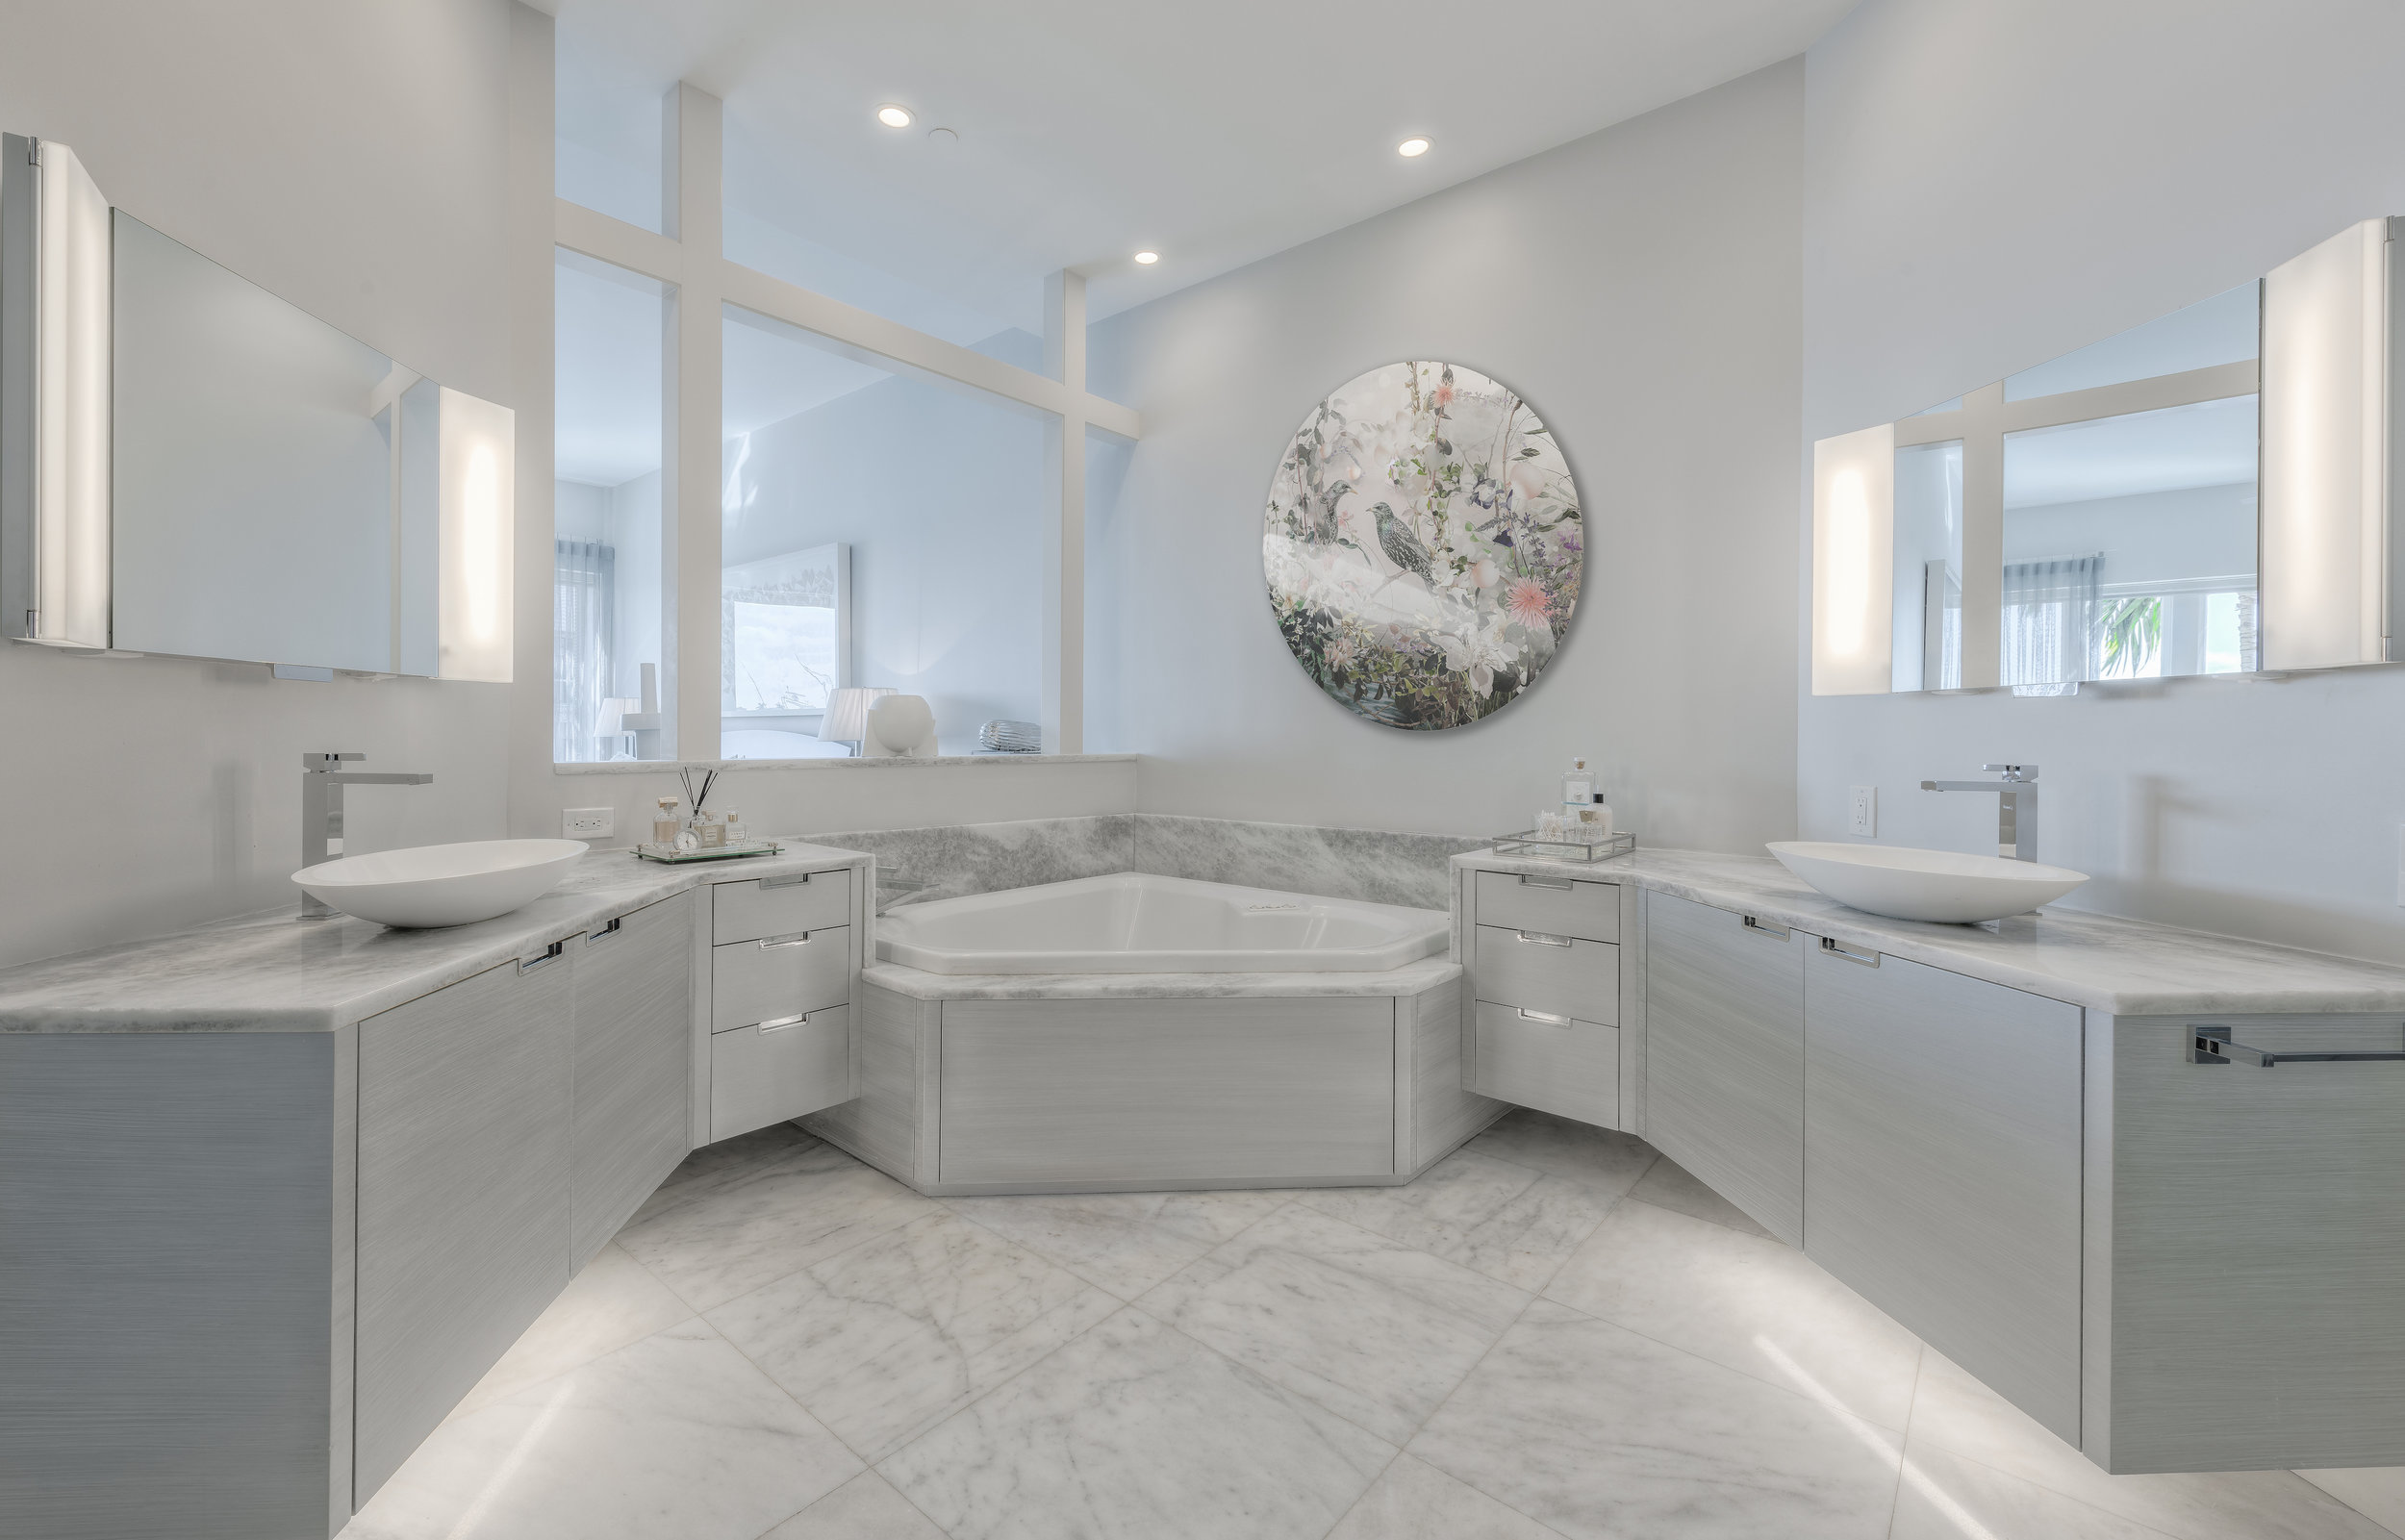 Master Suite Renovation of master suite by designer, Chad Jensen. Elegant floated cabinetry design with hand-applied striate, metallic finishes, from Thomas Riley Artisans' Guild.